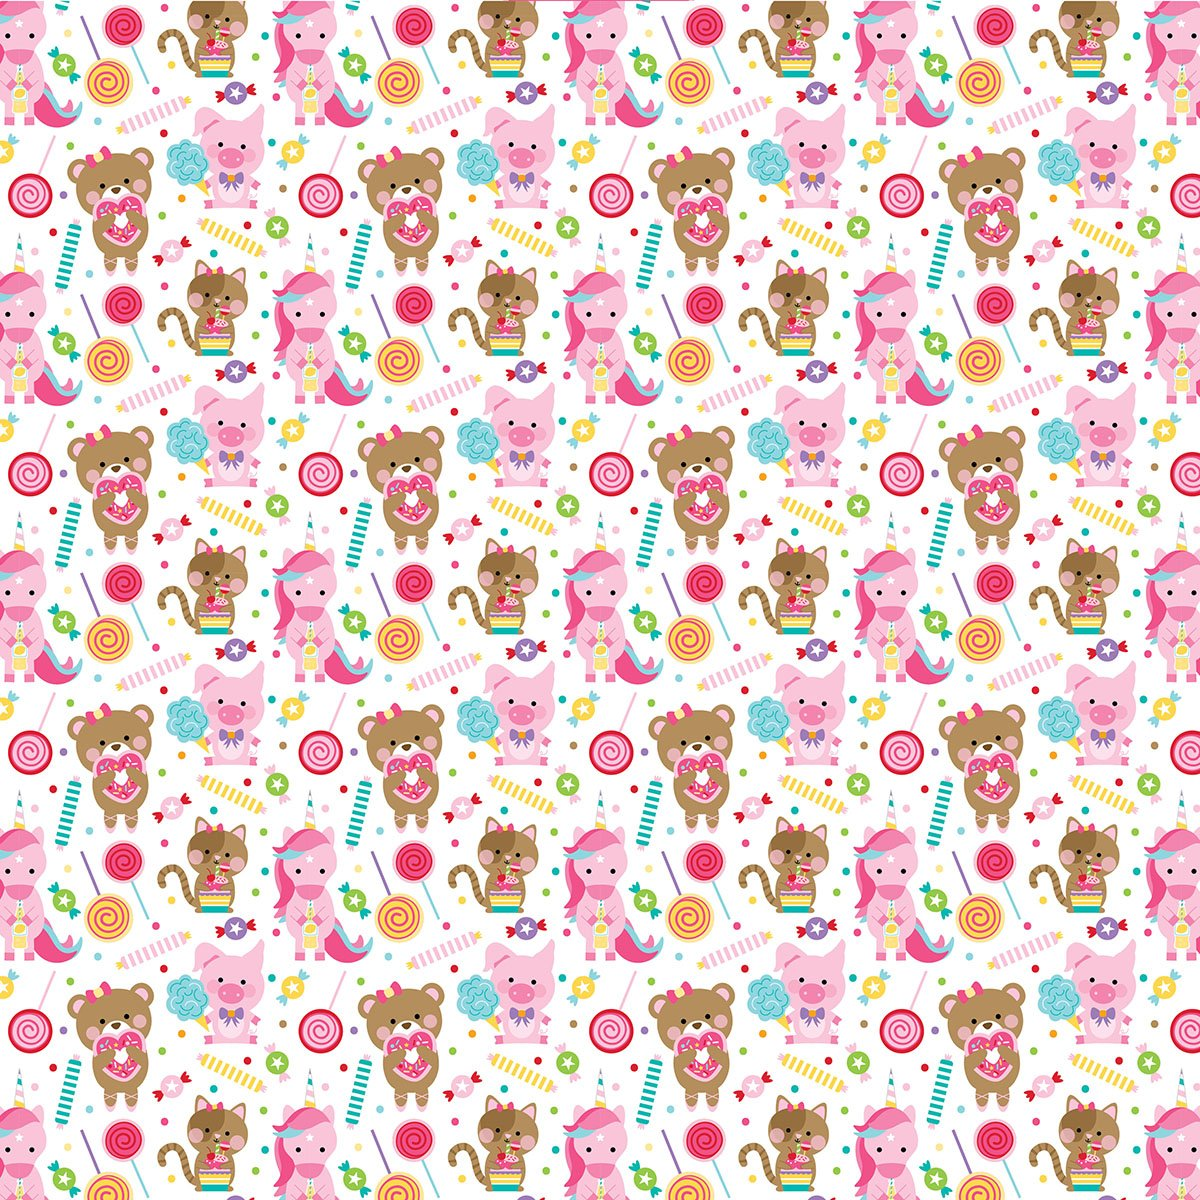 COLLECTION: My Candy Girl 12x12 Doublesided Cardstock